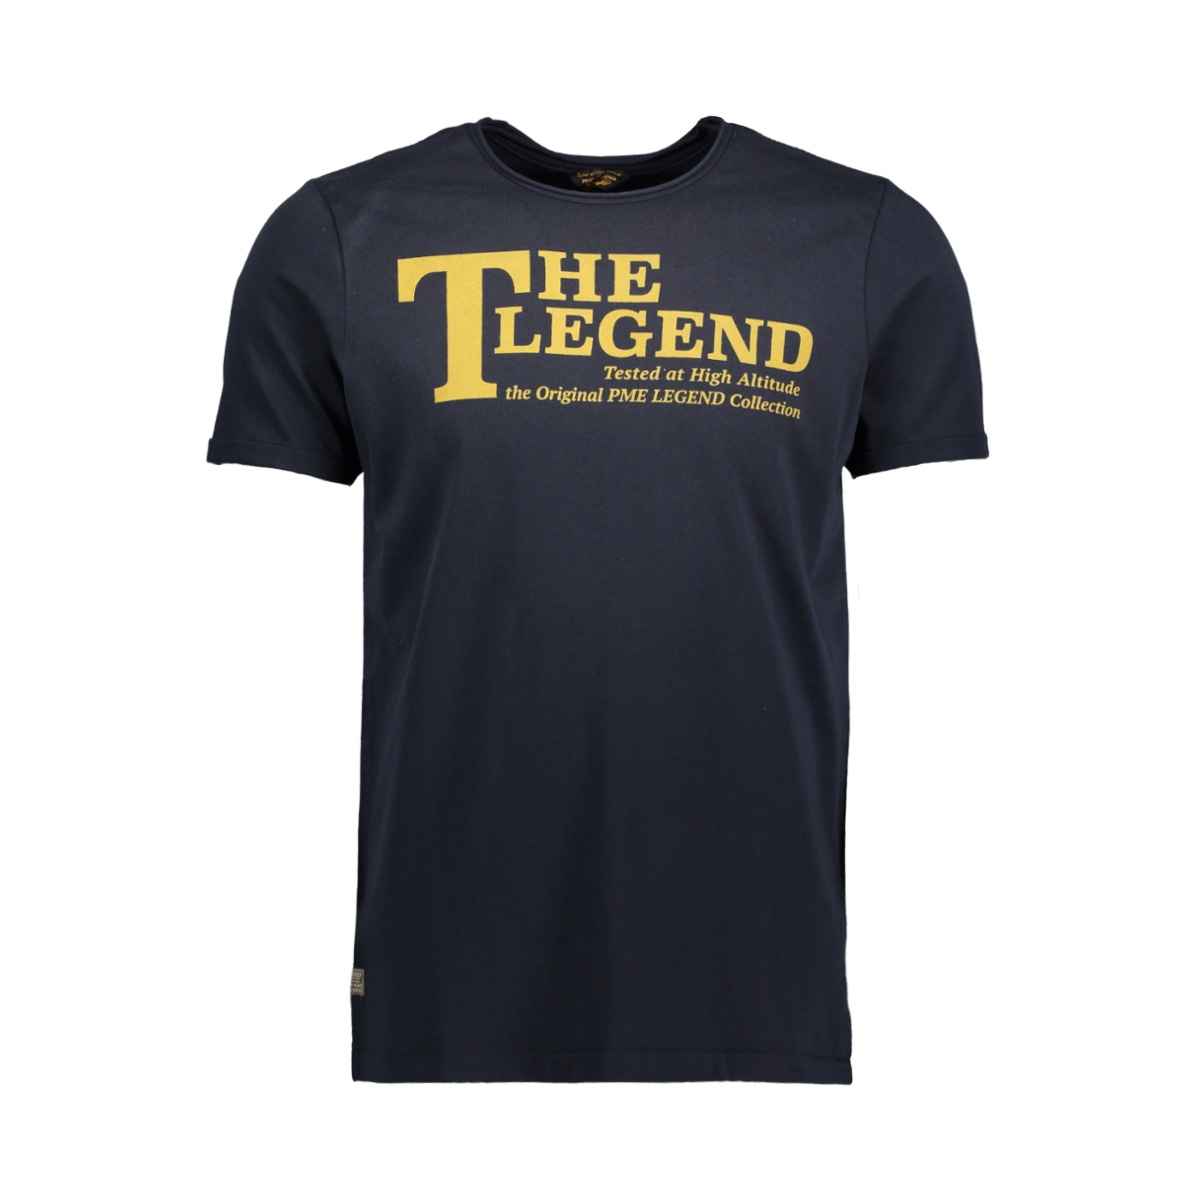 ptss184571 pme legend t-shirt 5110